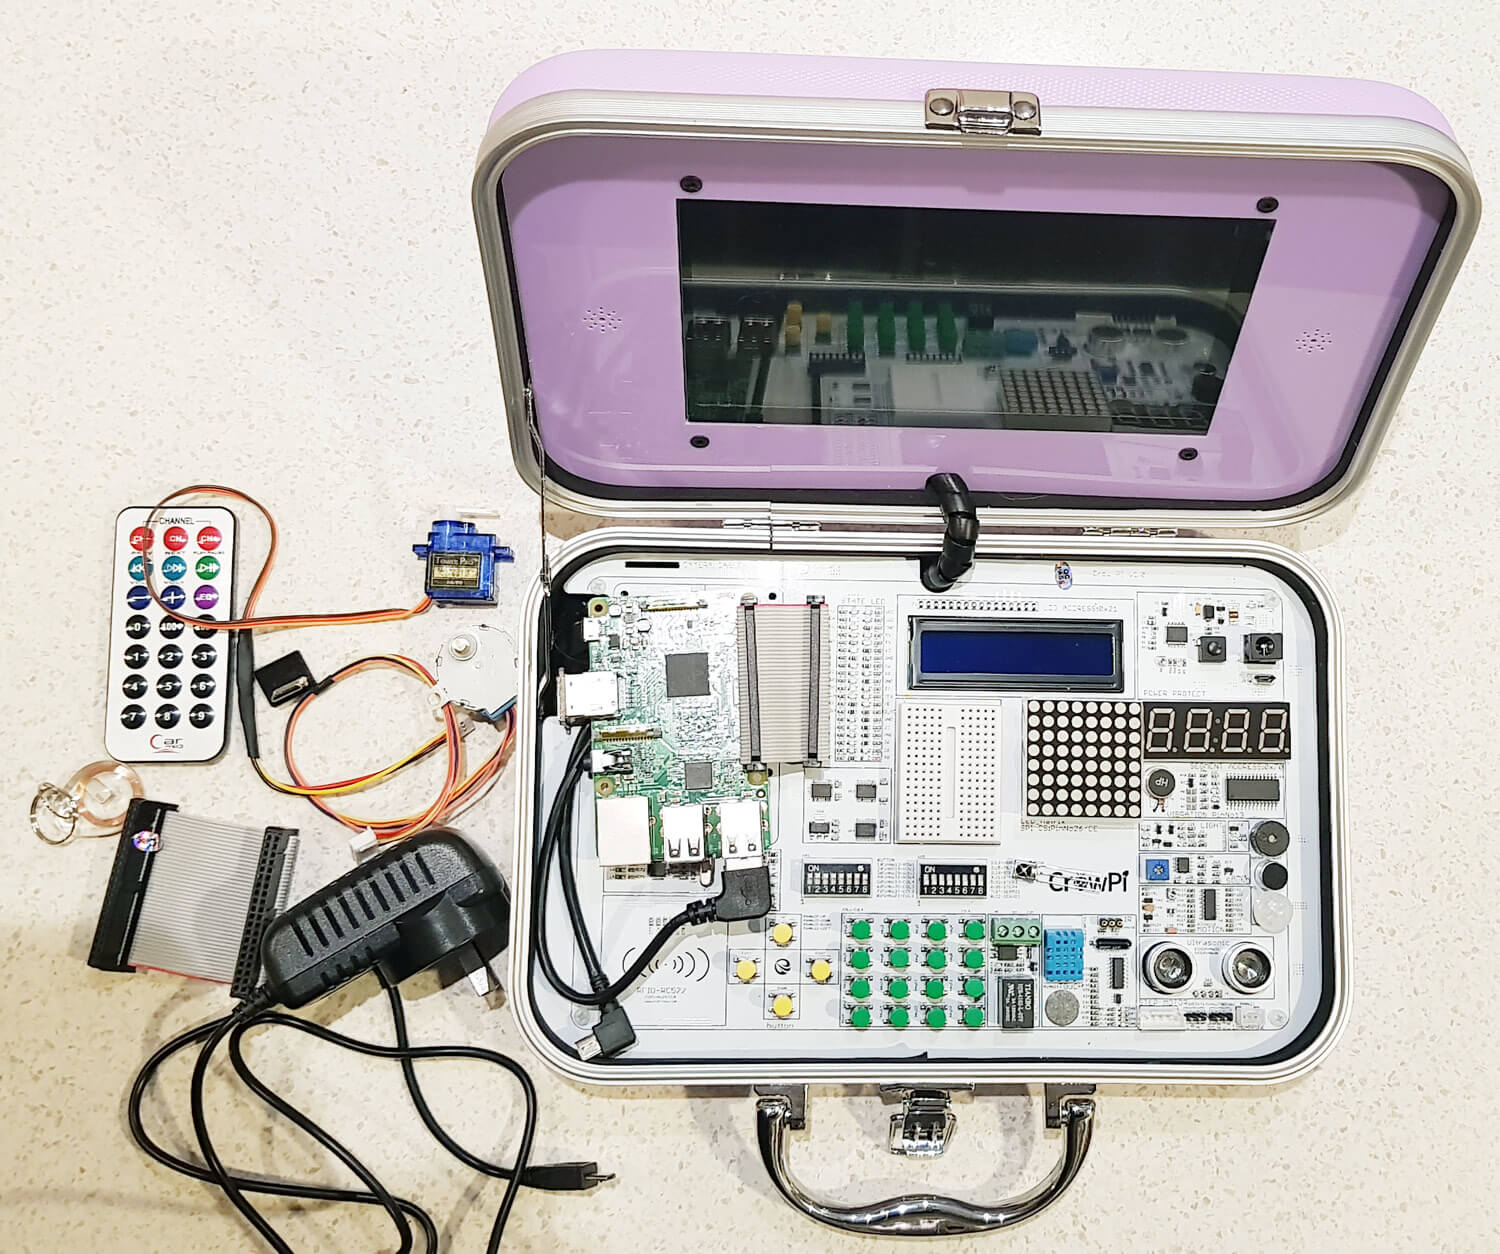 CrowPi: Raspberry Pi Experimenters Kit Review (With RTL-SDR